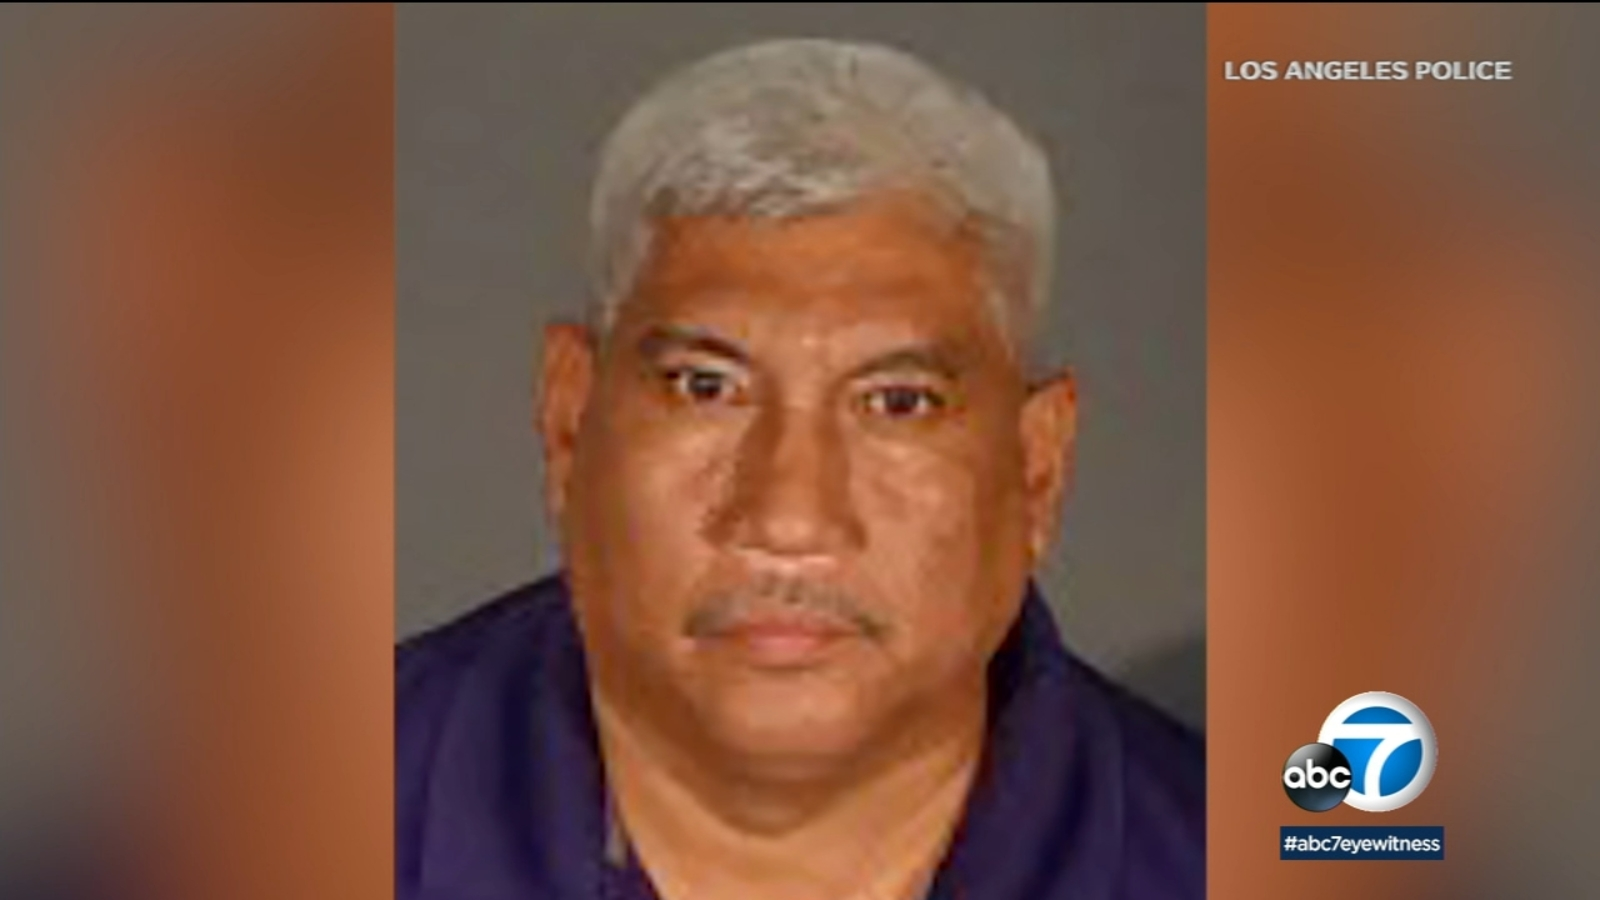 Child sexual abuse suspect who frequented Fresno arrested in Southern California, police say there may be more victims - ABC30 Fresno